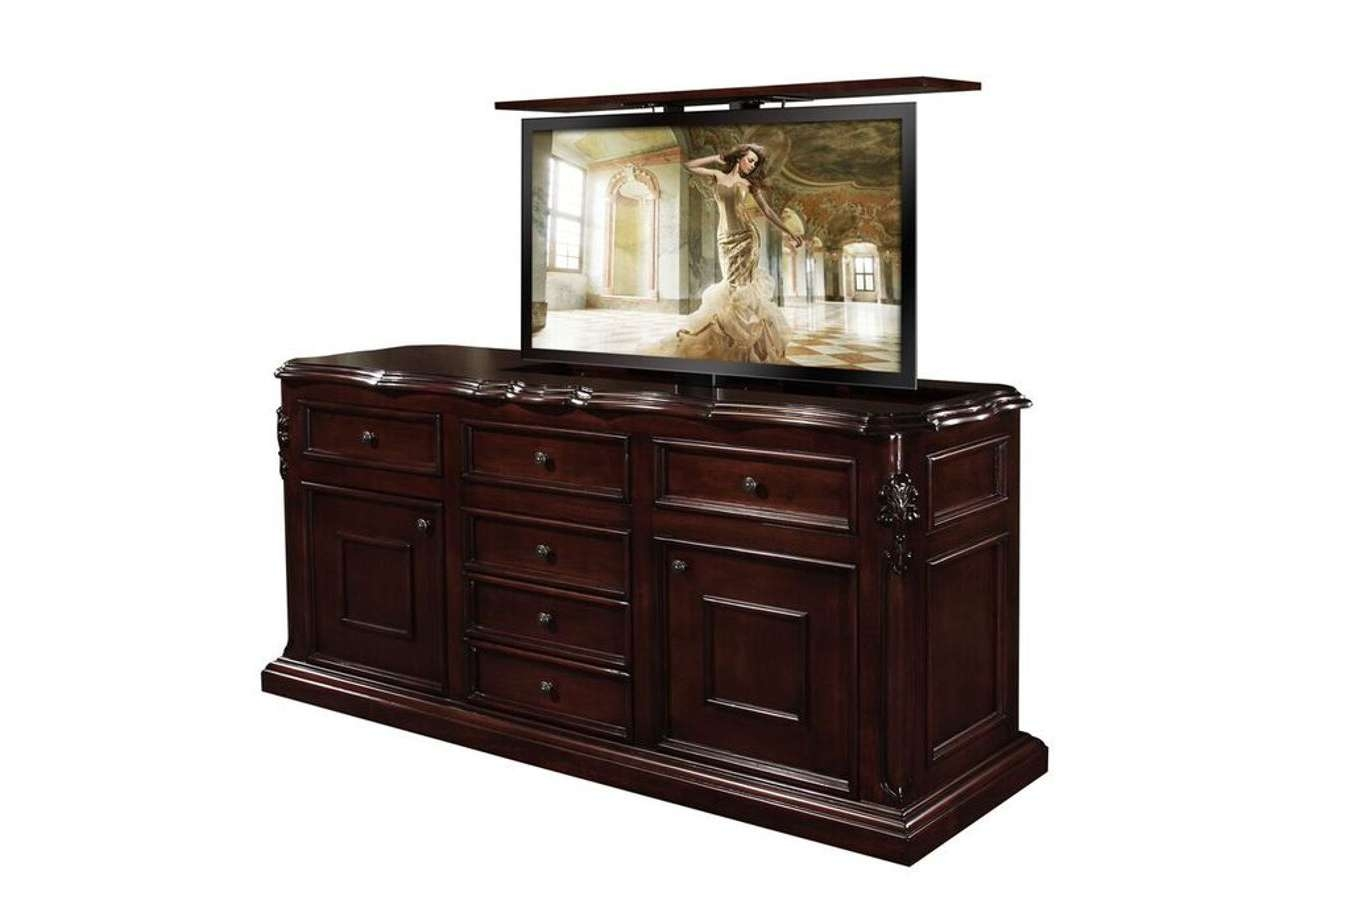 pop up tv cabinets australia cabinets matttroy. Black Bedroom Furniture Sets. Home Design Ideas